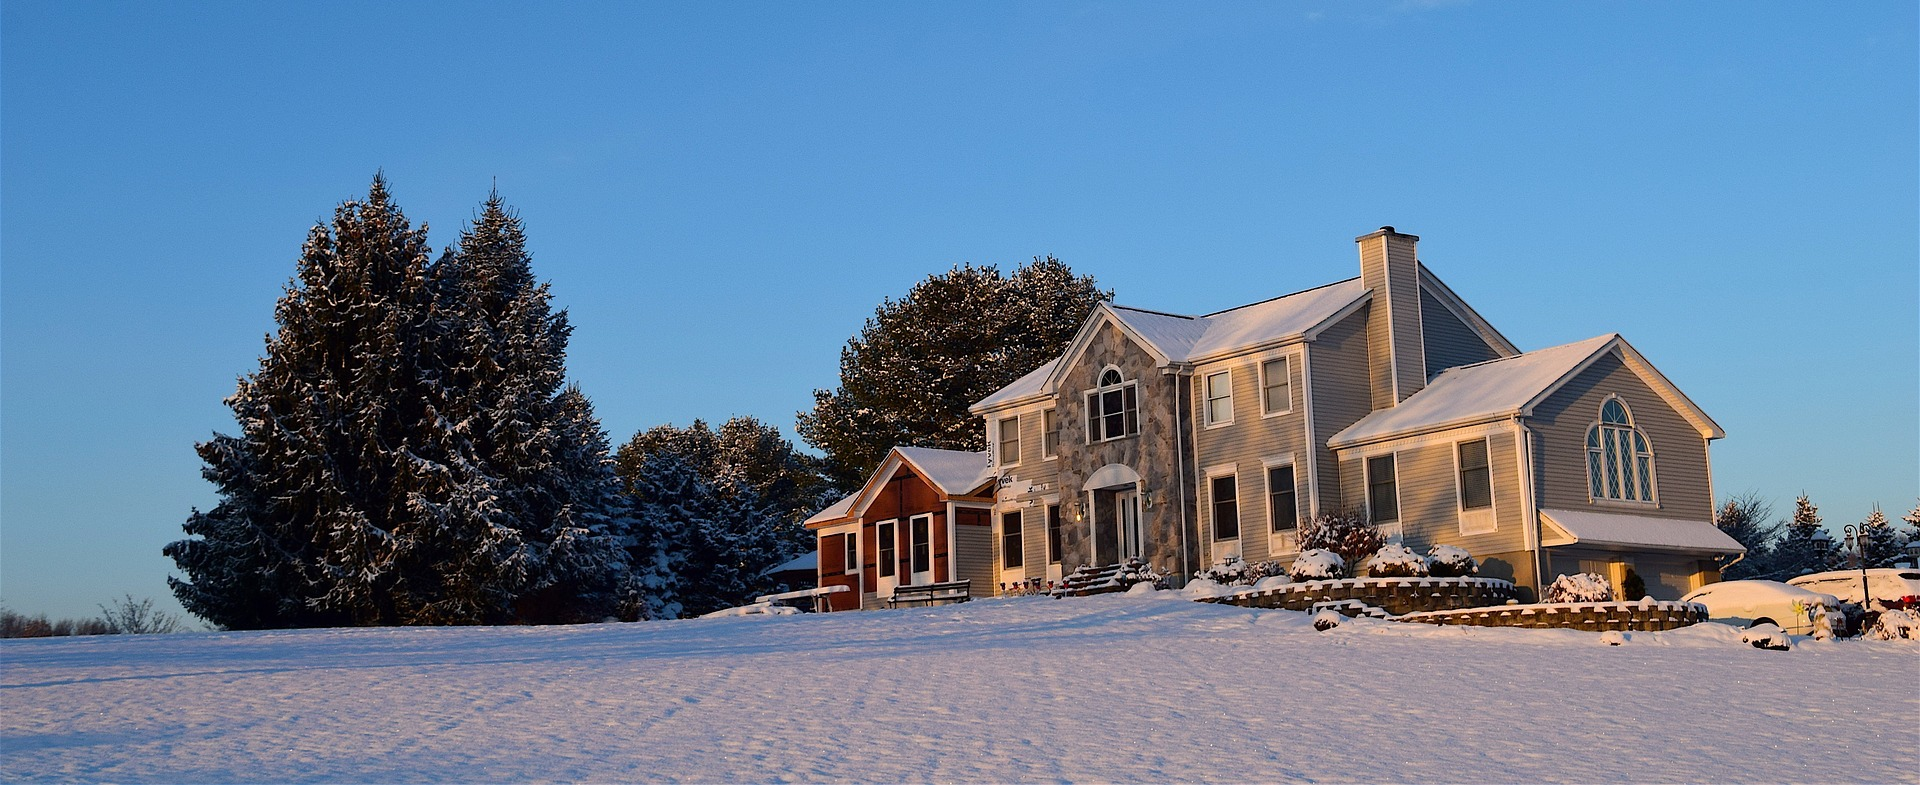 beautiful home in the snowy weather